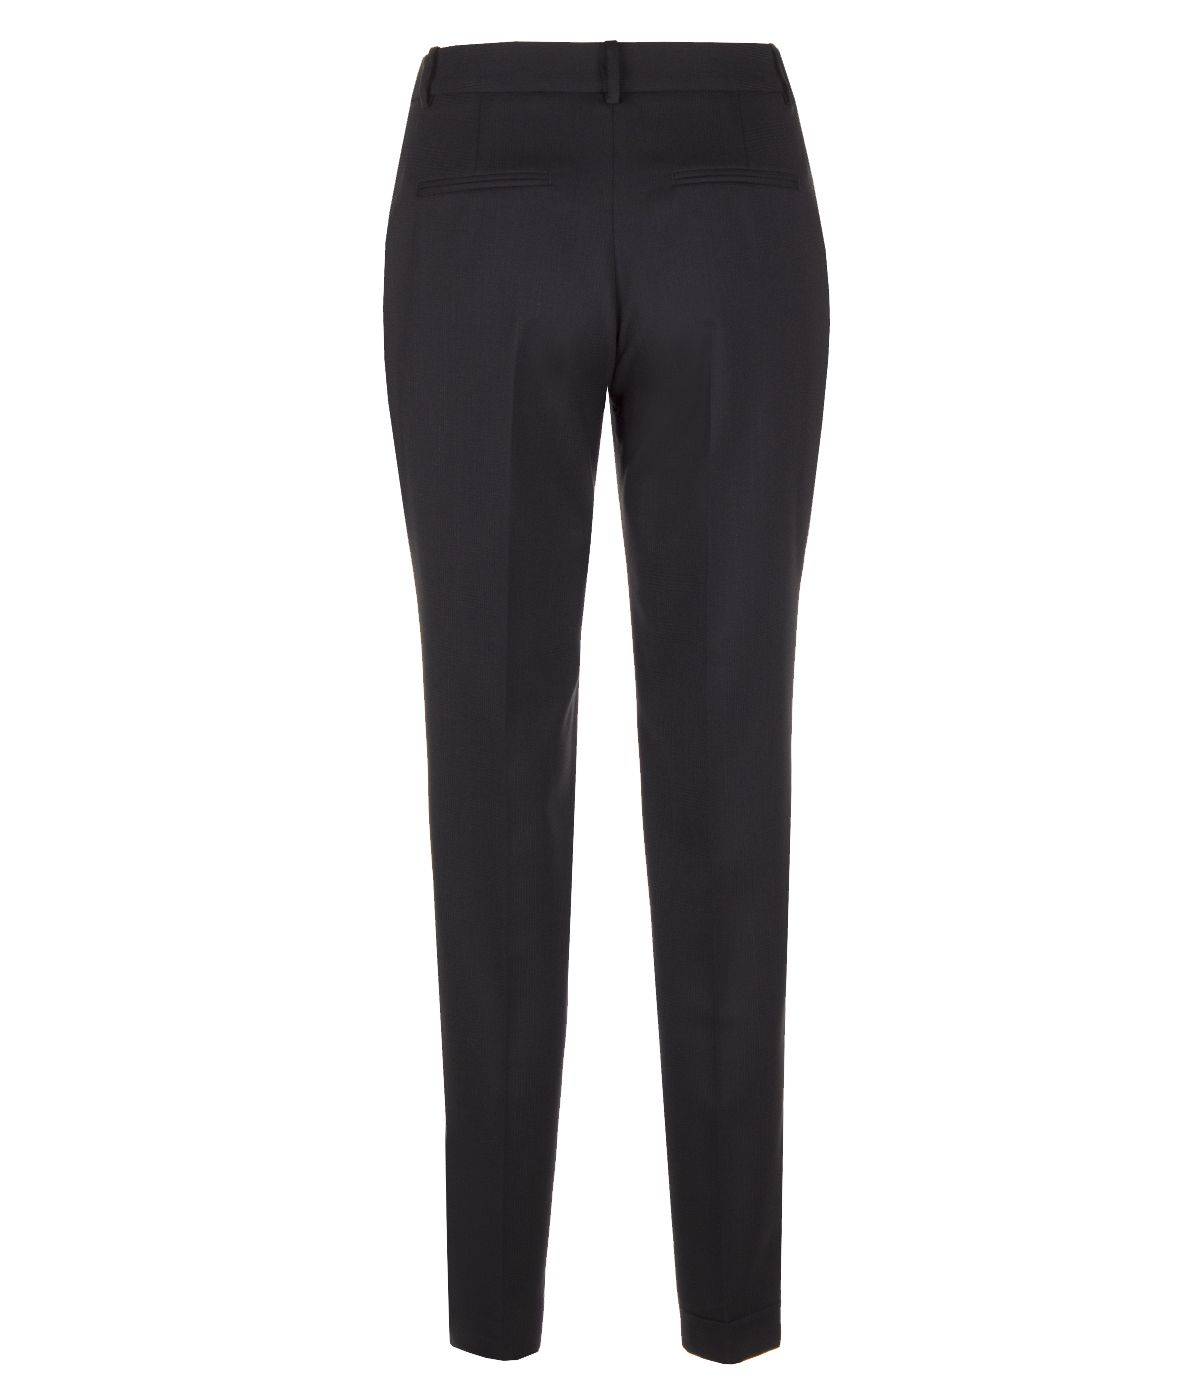 CLASSIC FIT BLACK TROUSERS 1